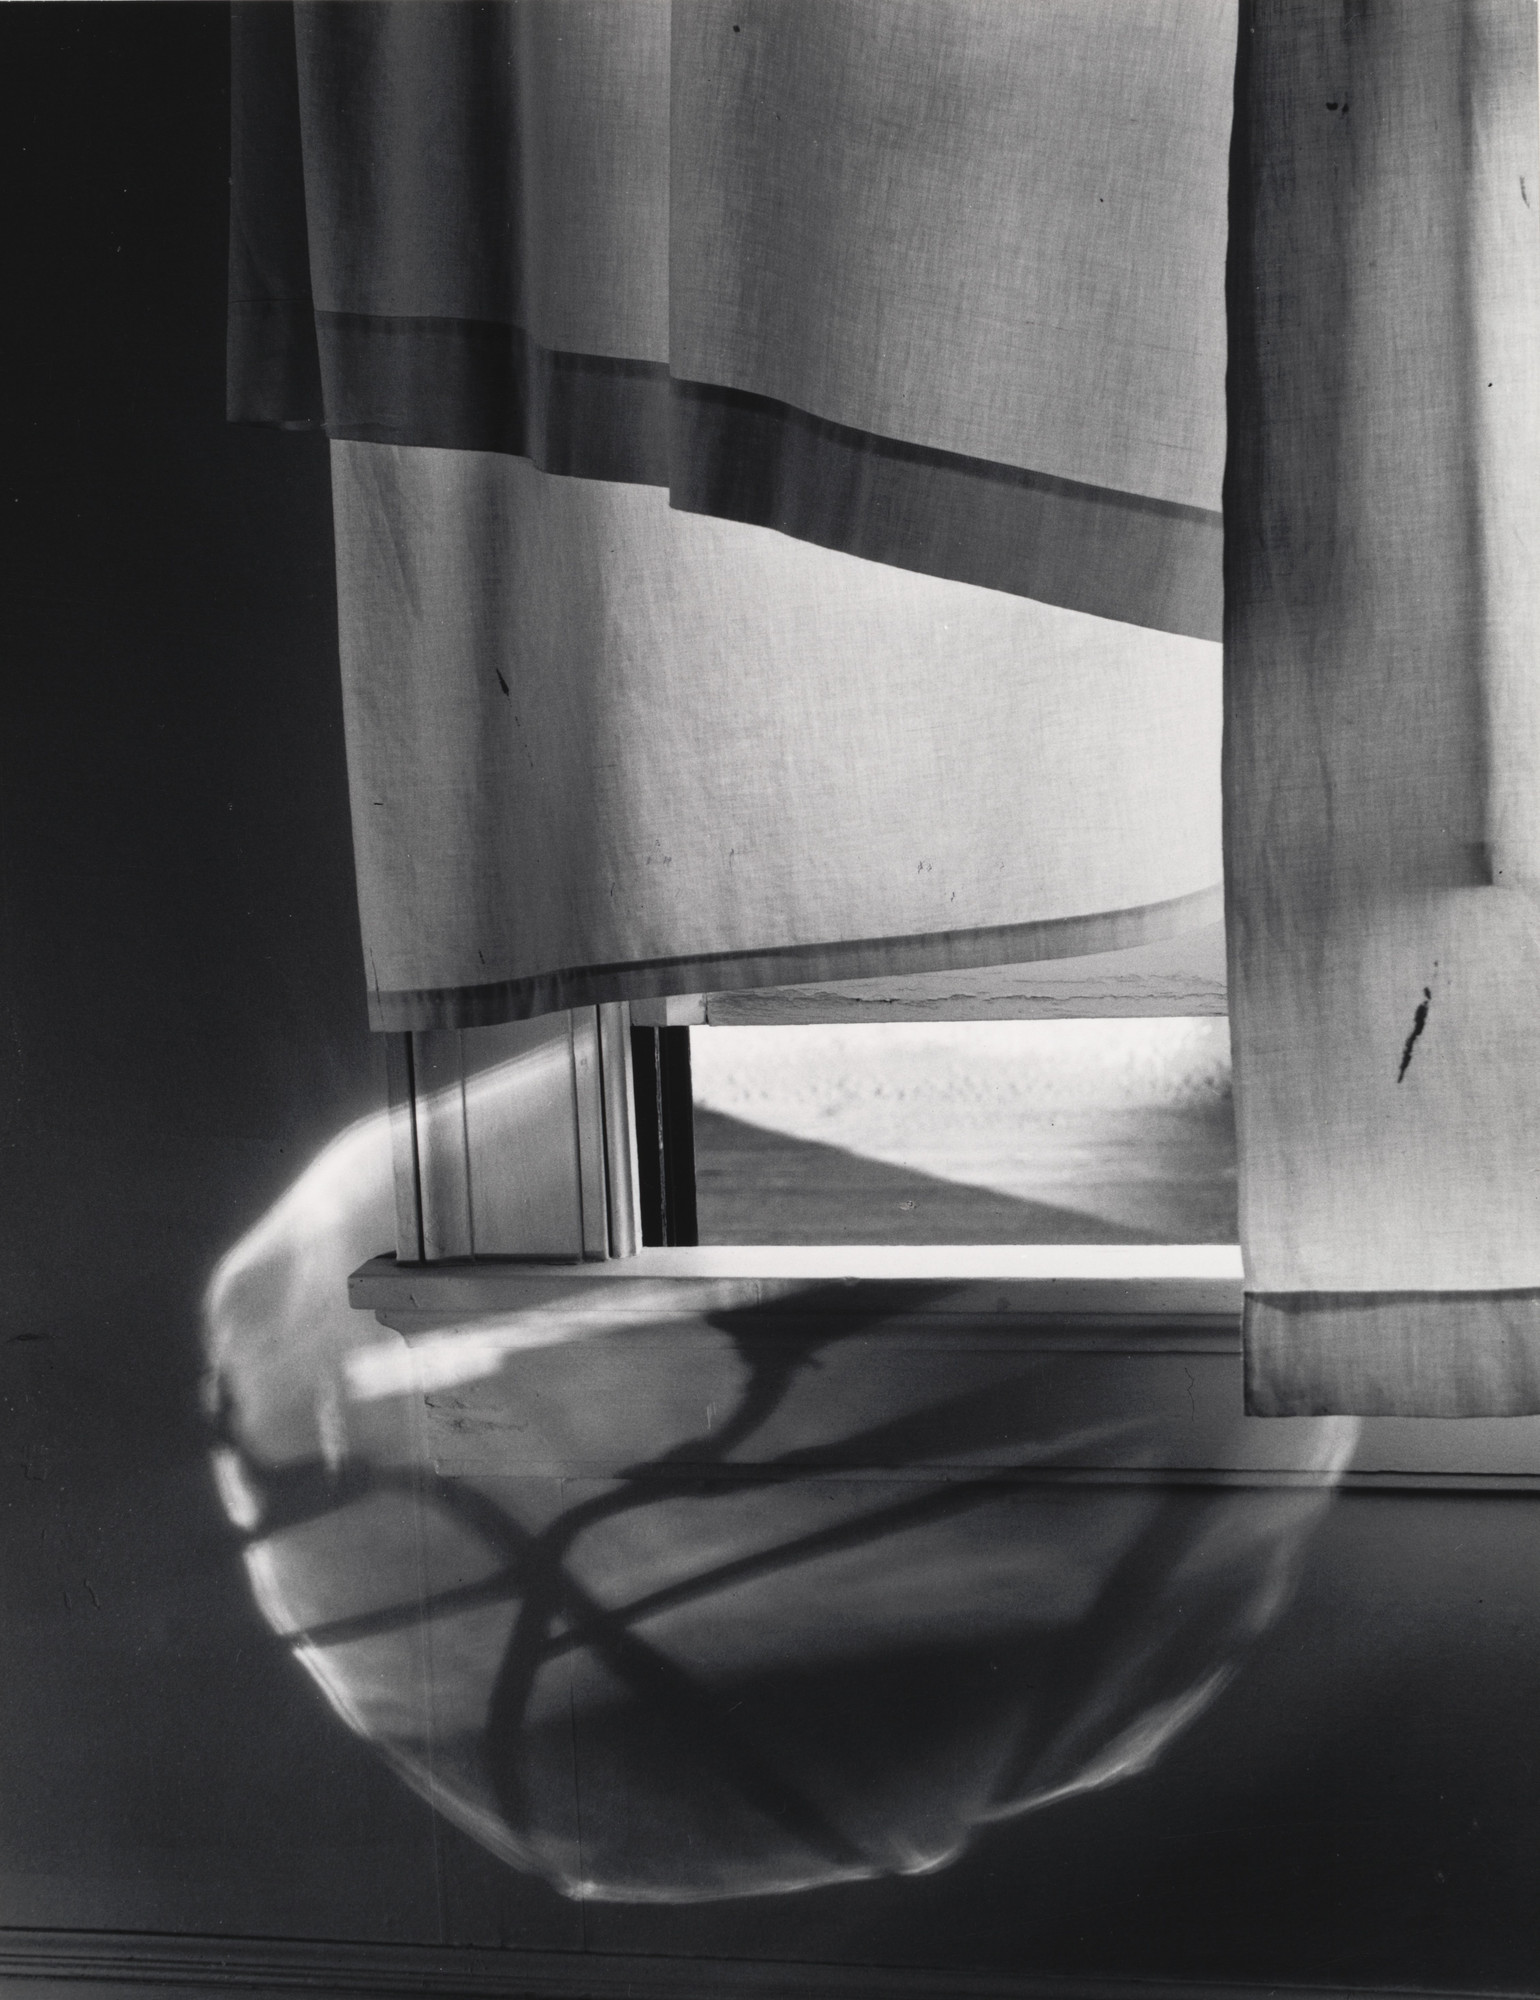 Minor White. Window Sill and Reflection. 1958